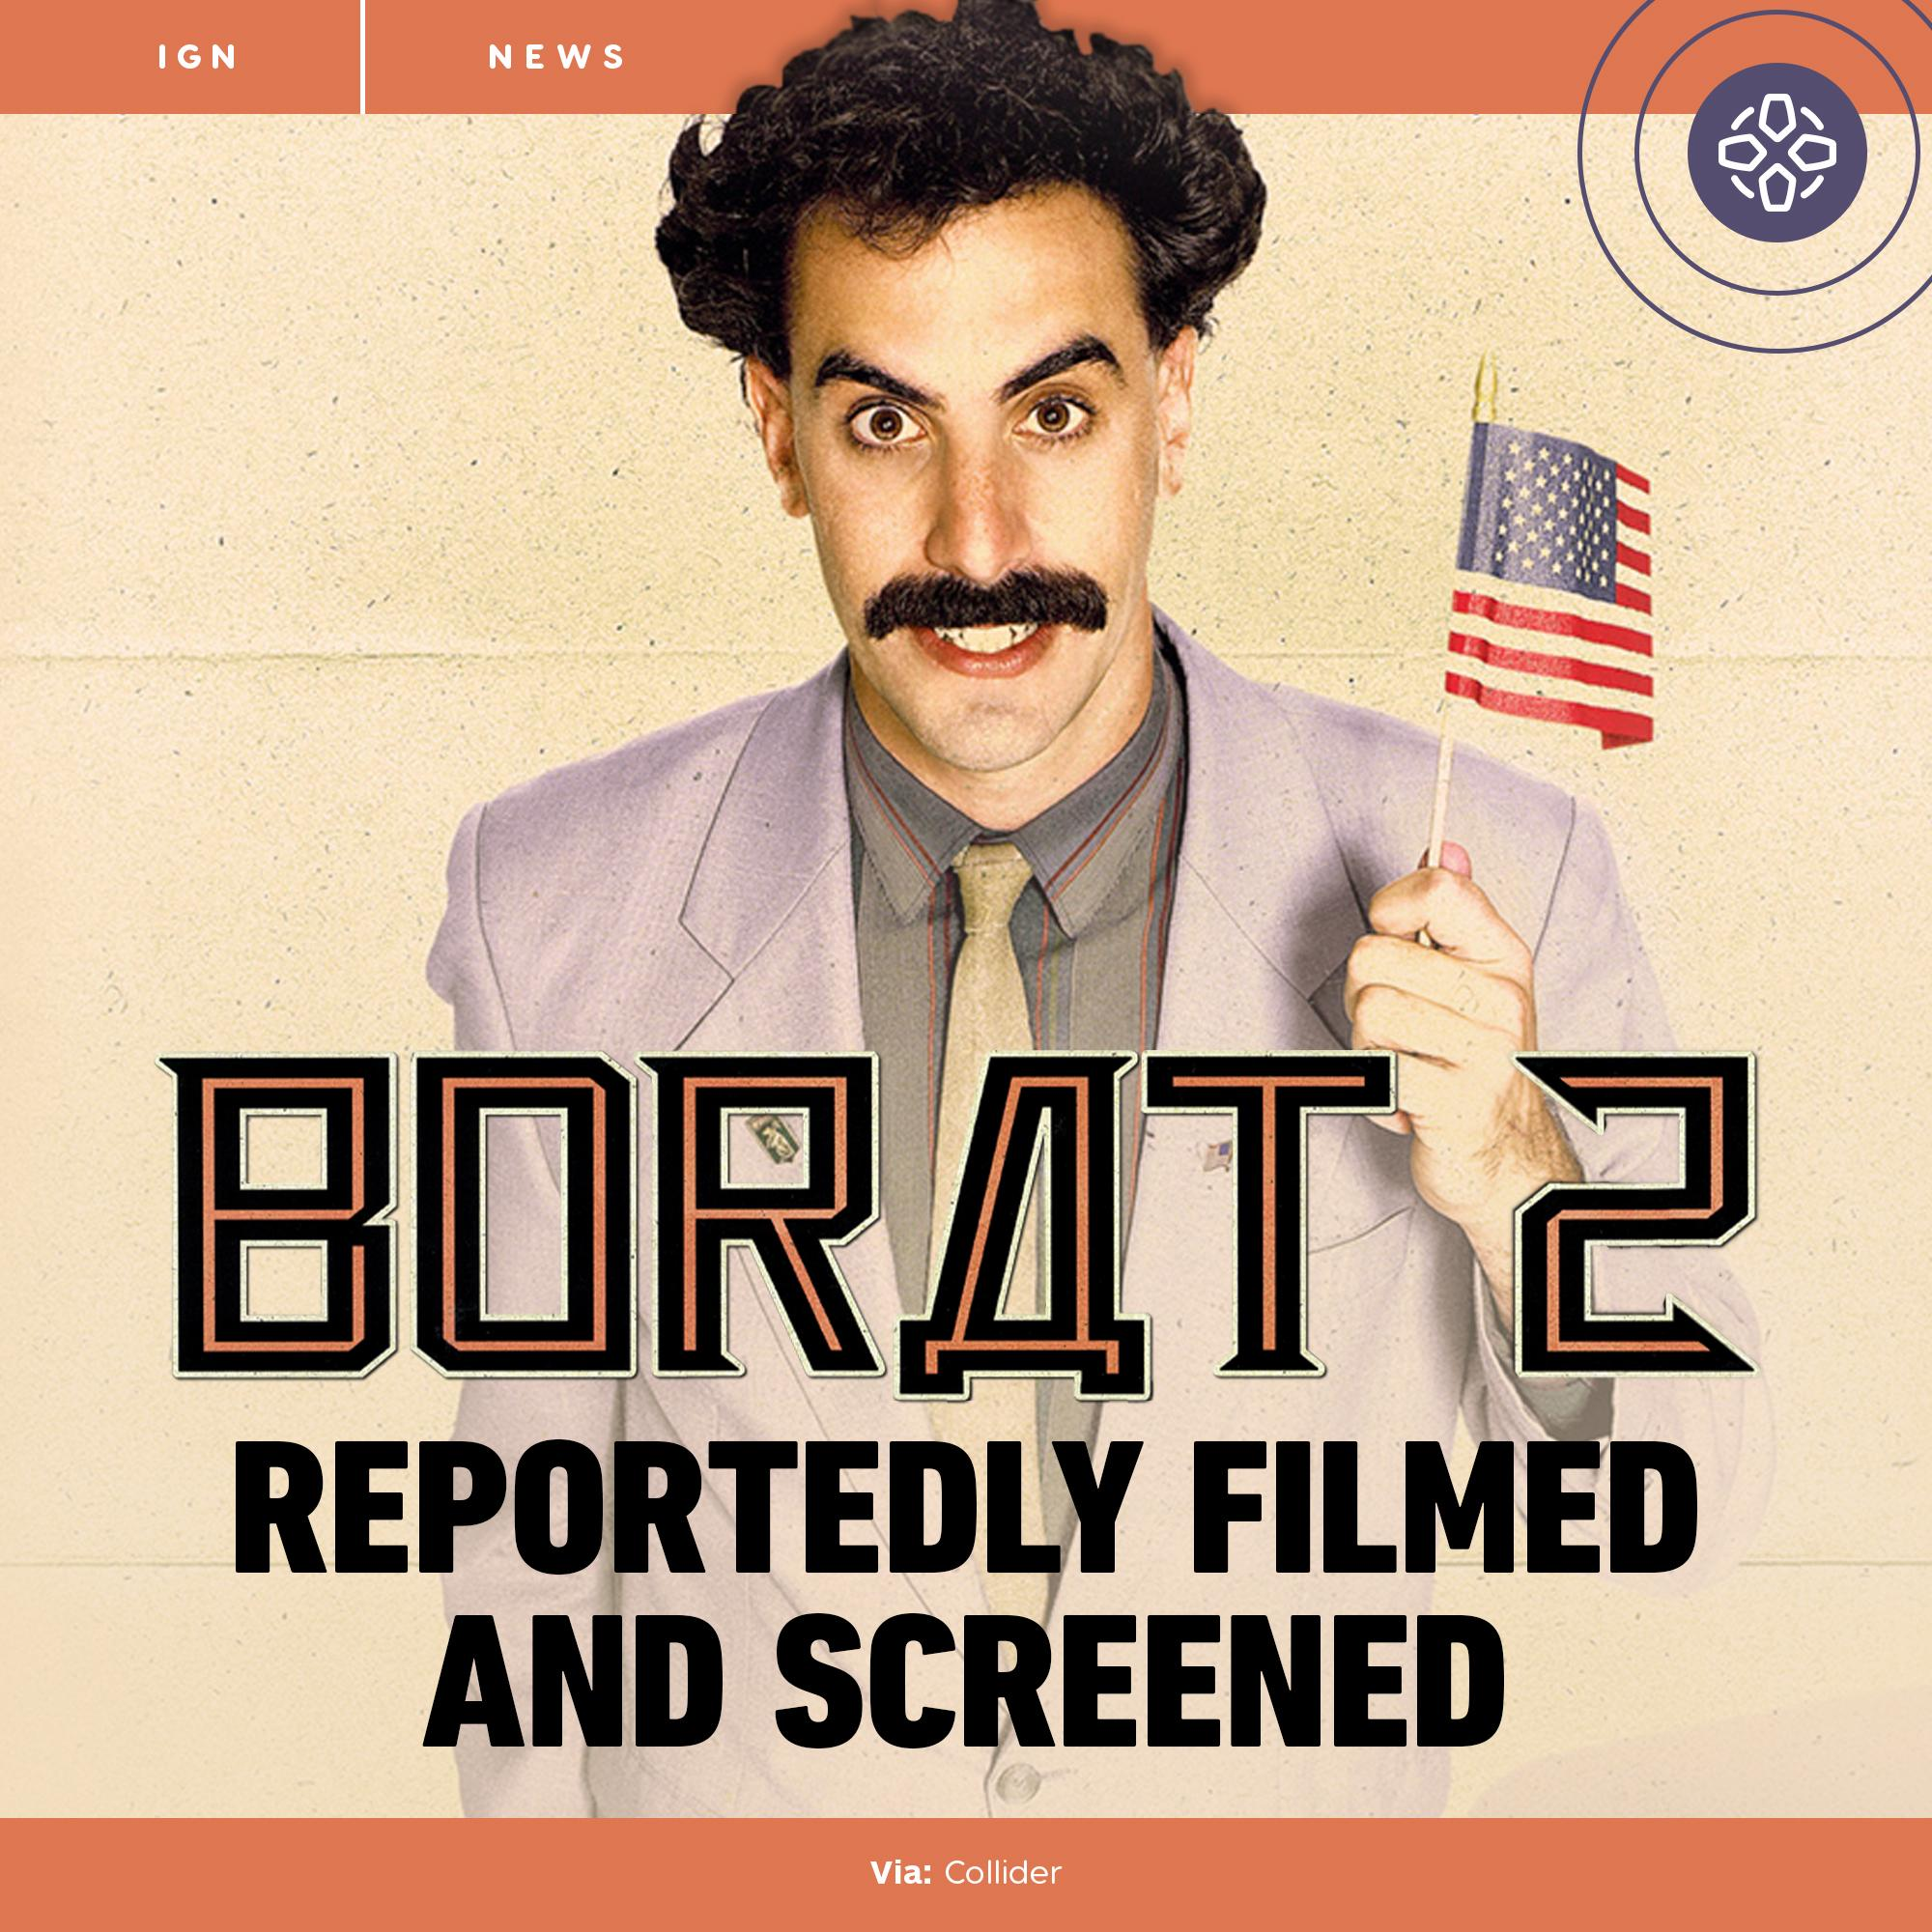 Ign On Twitter Borat 2 Is Said To Have Already Been Shot On Location Around L A And Screened For Industry People A New Report Claims Some Believe It Will Be Released Prior